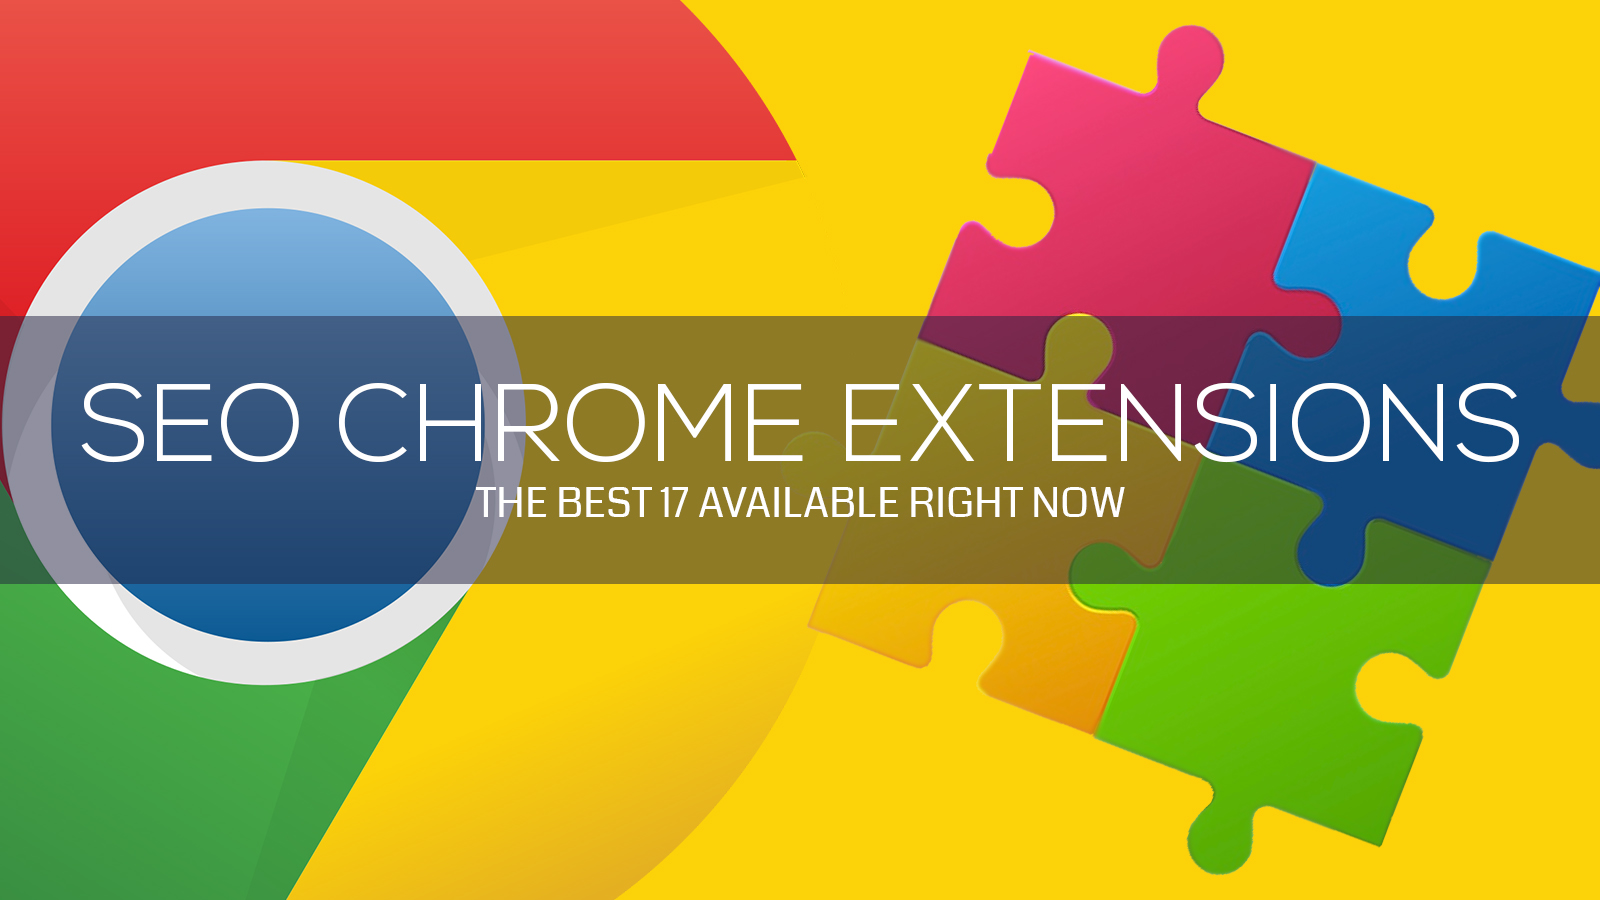 17 of the Best SEO Chrome Extensions